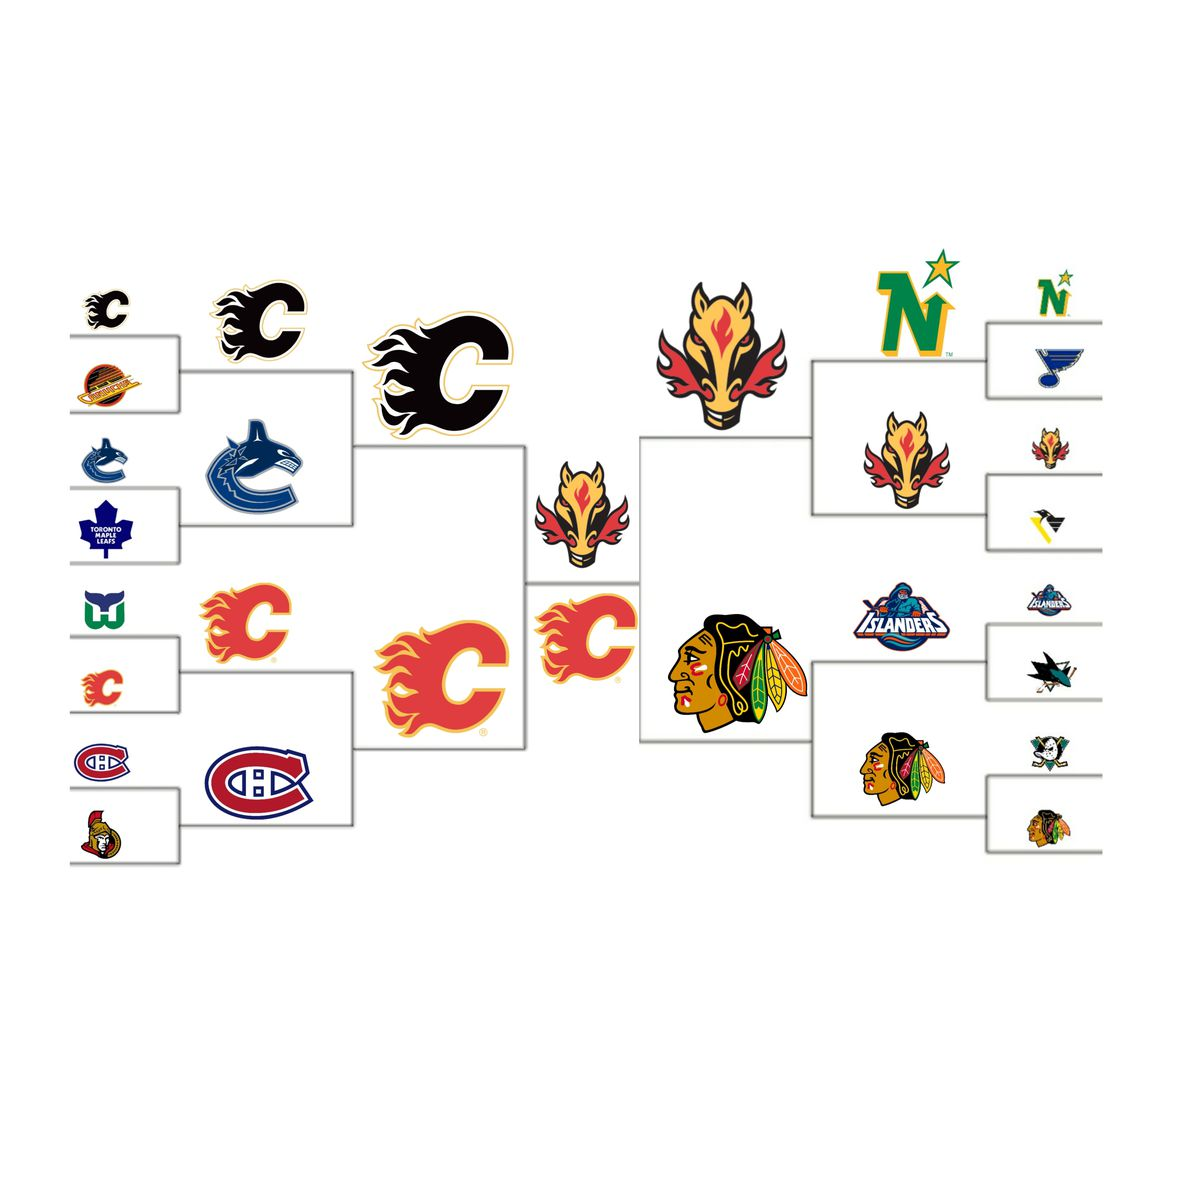 Nhl Logo Bracket Challenge And Then There Were Two Matchsticks And Gasoline